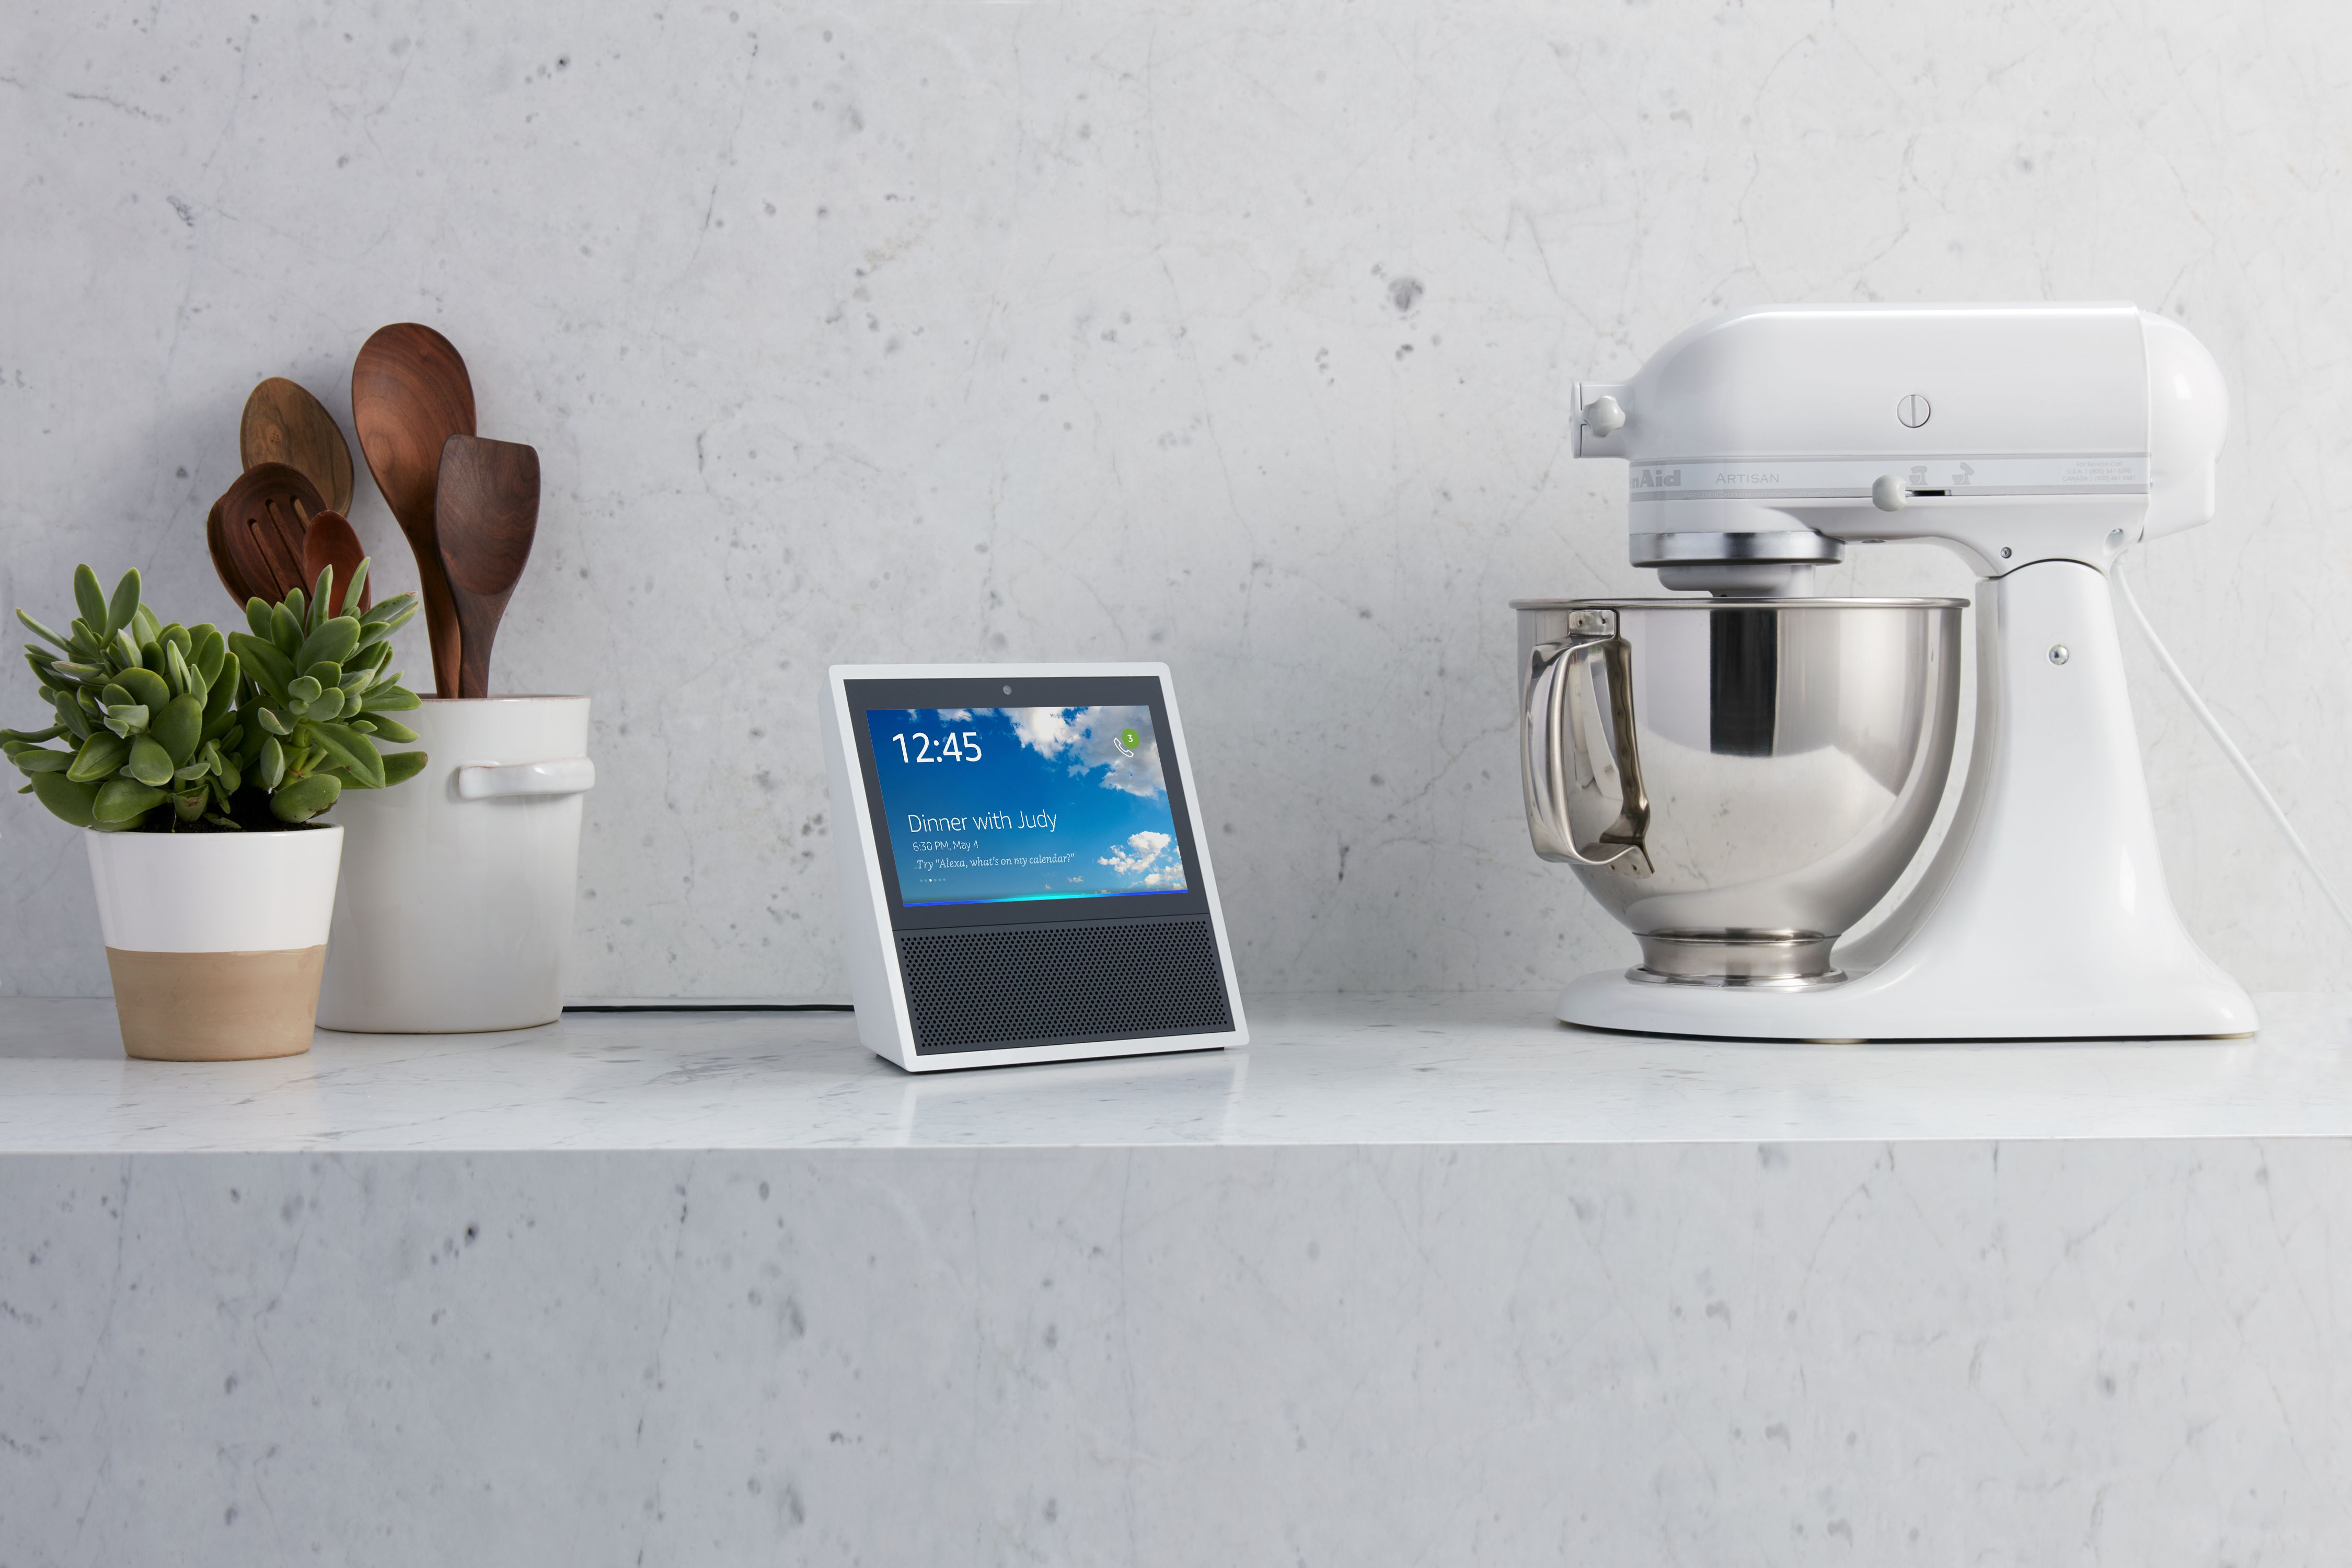 Amazon Echo Show: 5 Things You Need to Know